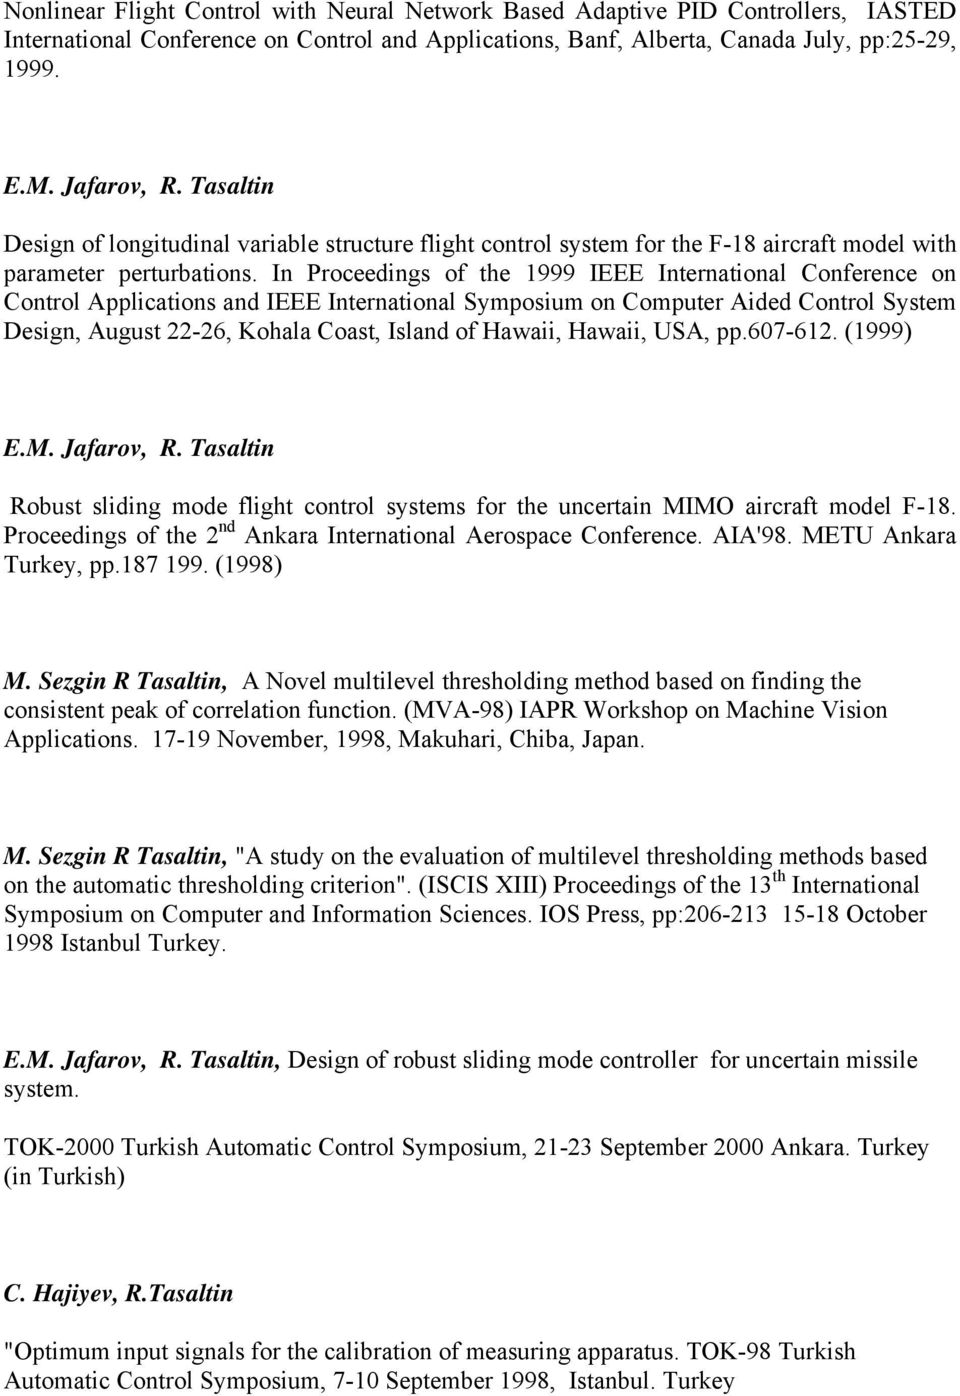 In Proceedings of the 1999 IEEE International Conference on Control Applications and IEEE International Symposium on Computer Aided Control System Design, August 22-26, Kohala Coast, Island of